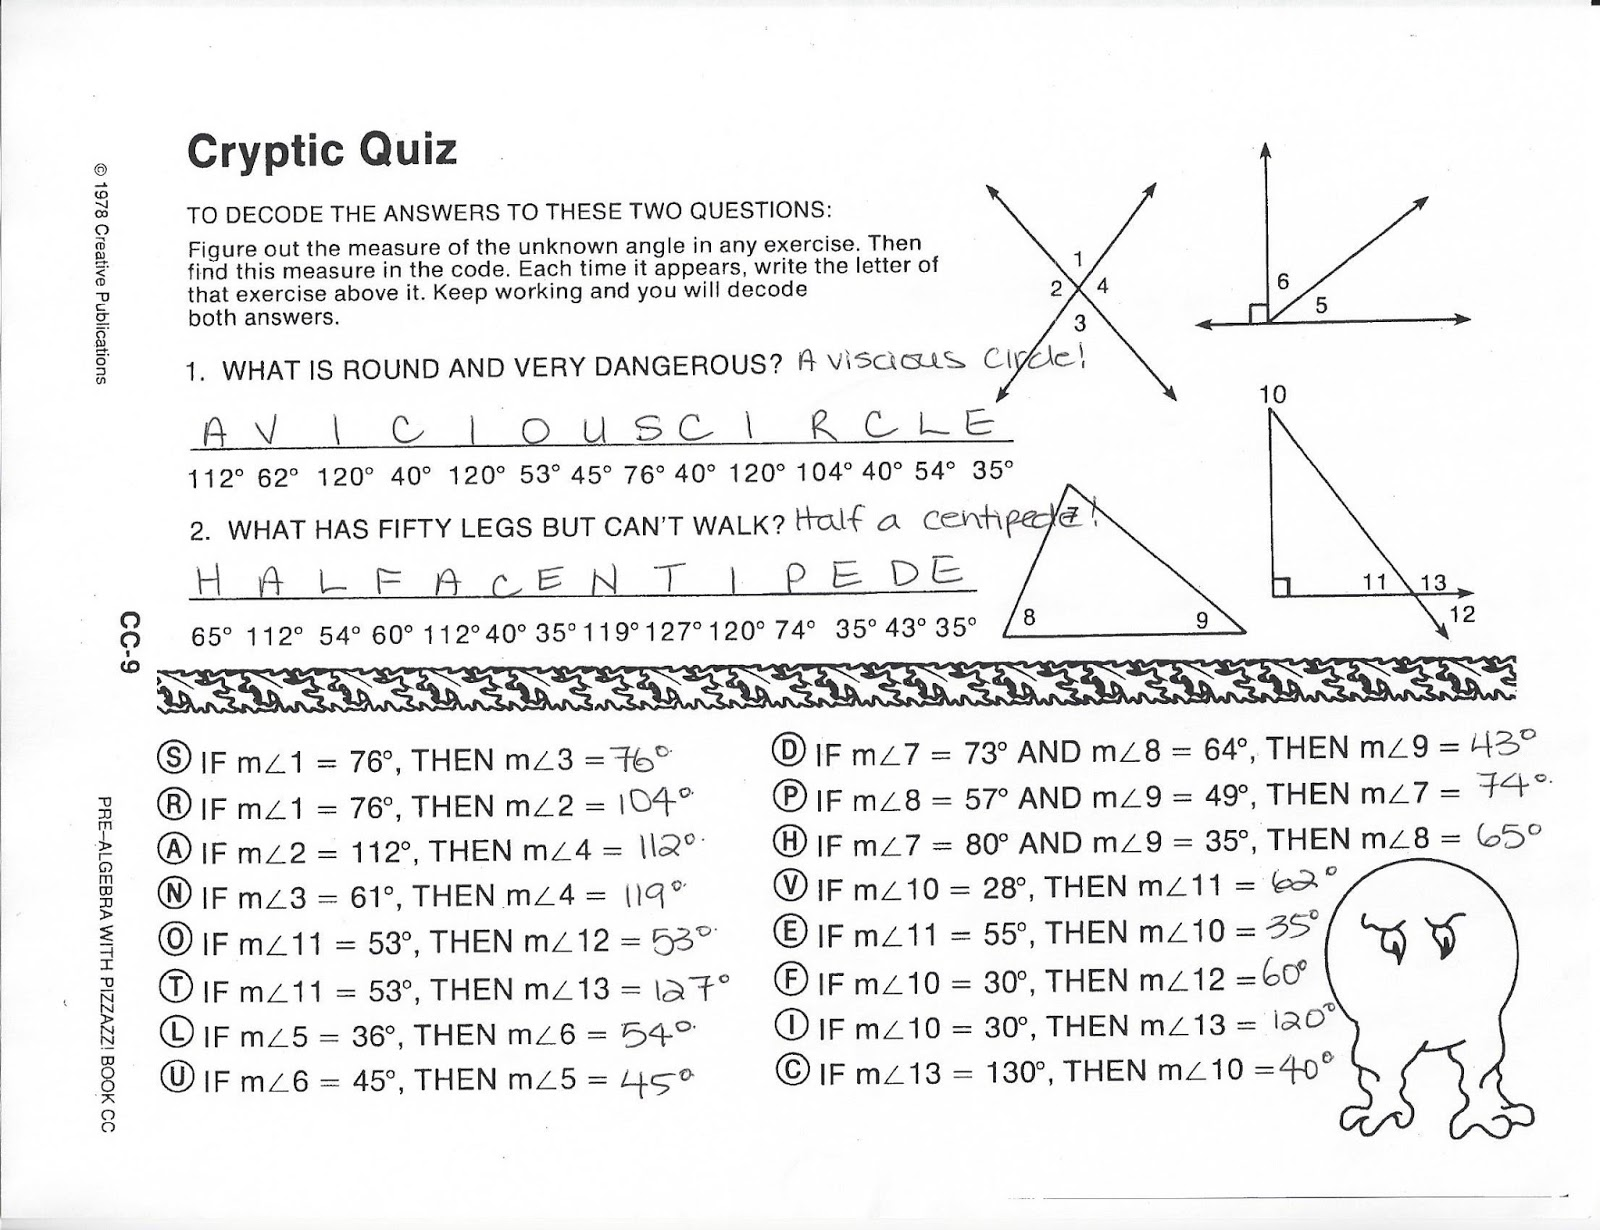 Printables Of Cryptic Quiz Worksheet What Is Round And Very Dangerous